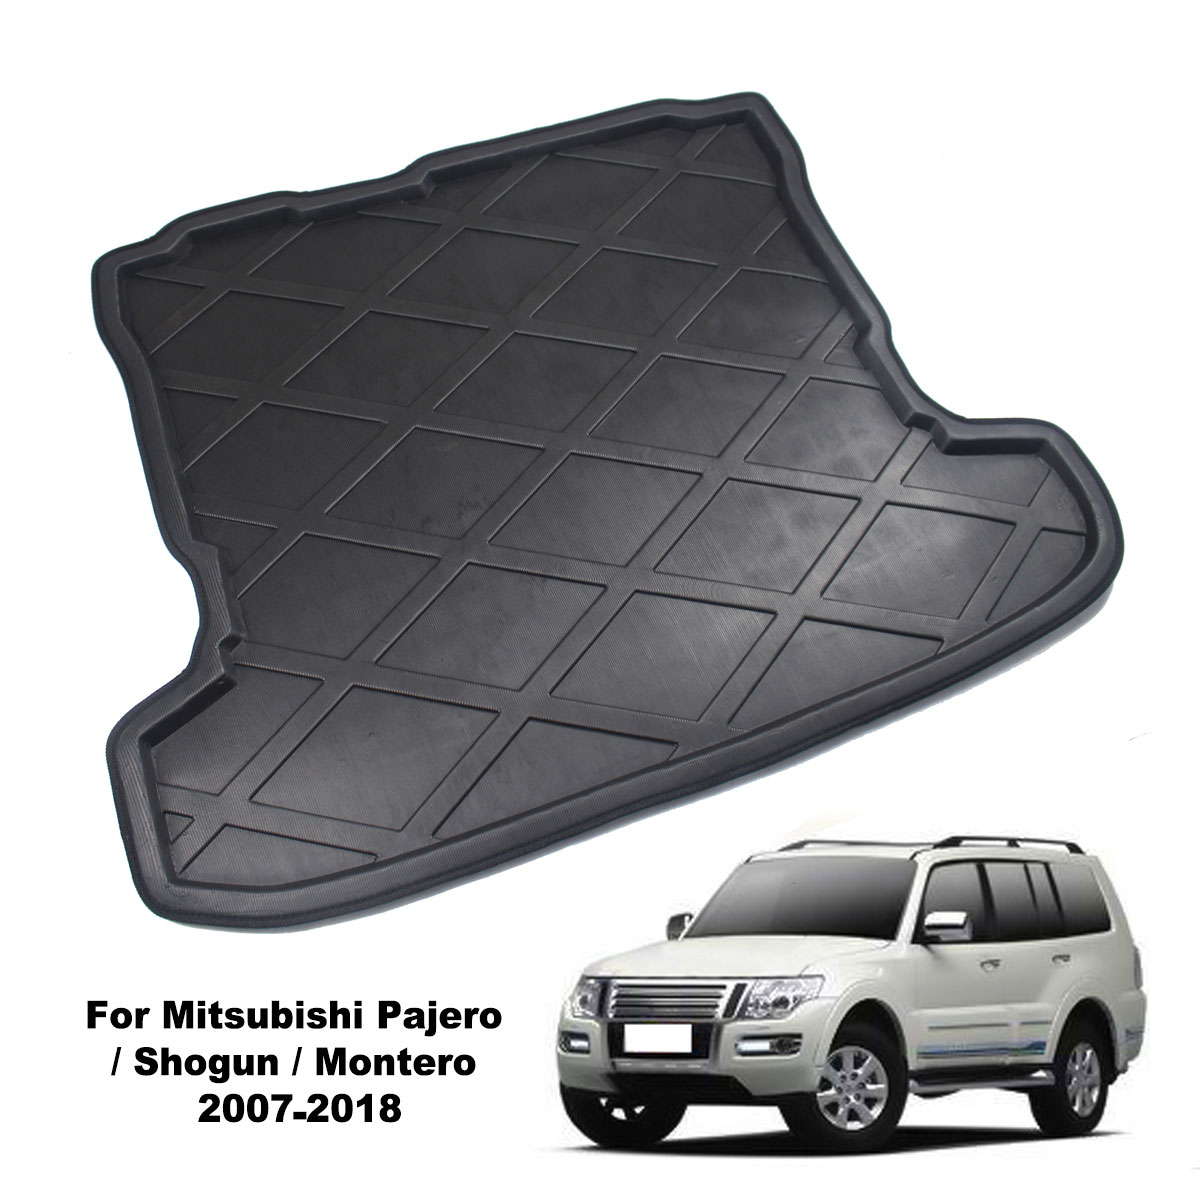 Floor-Carpet Trunk-Cover Cargo-Liner 2009 Pajero 2008 2007 Mitsubishi Rear for Shogun title=